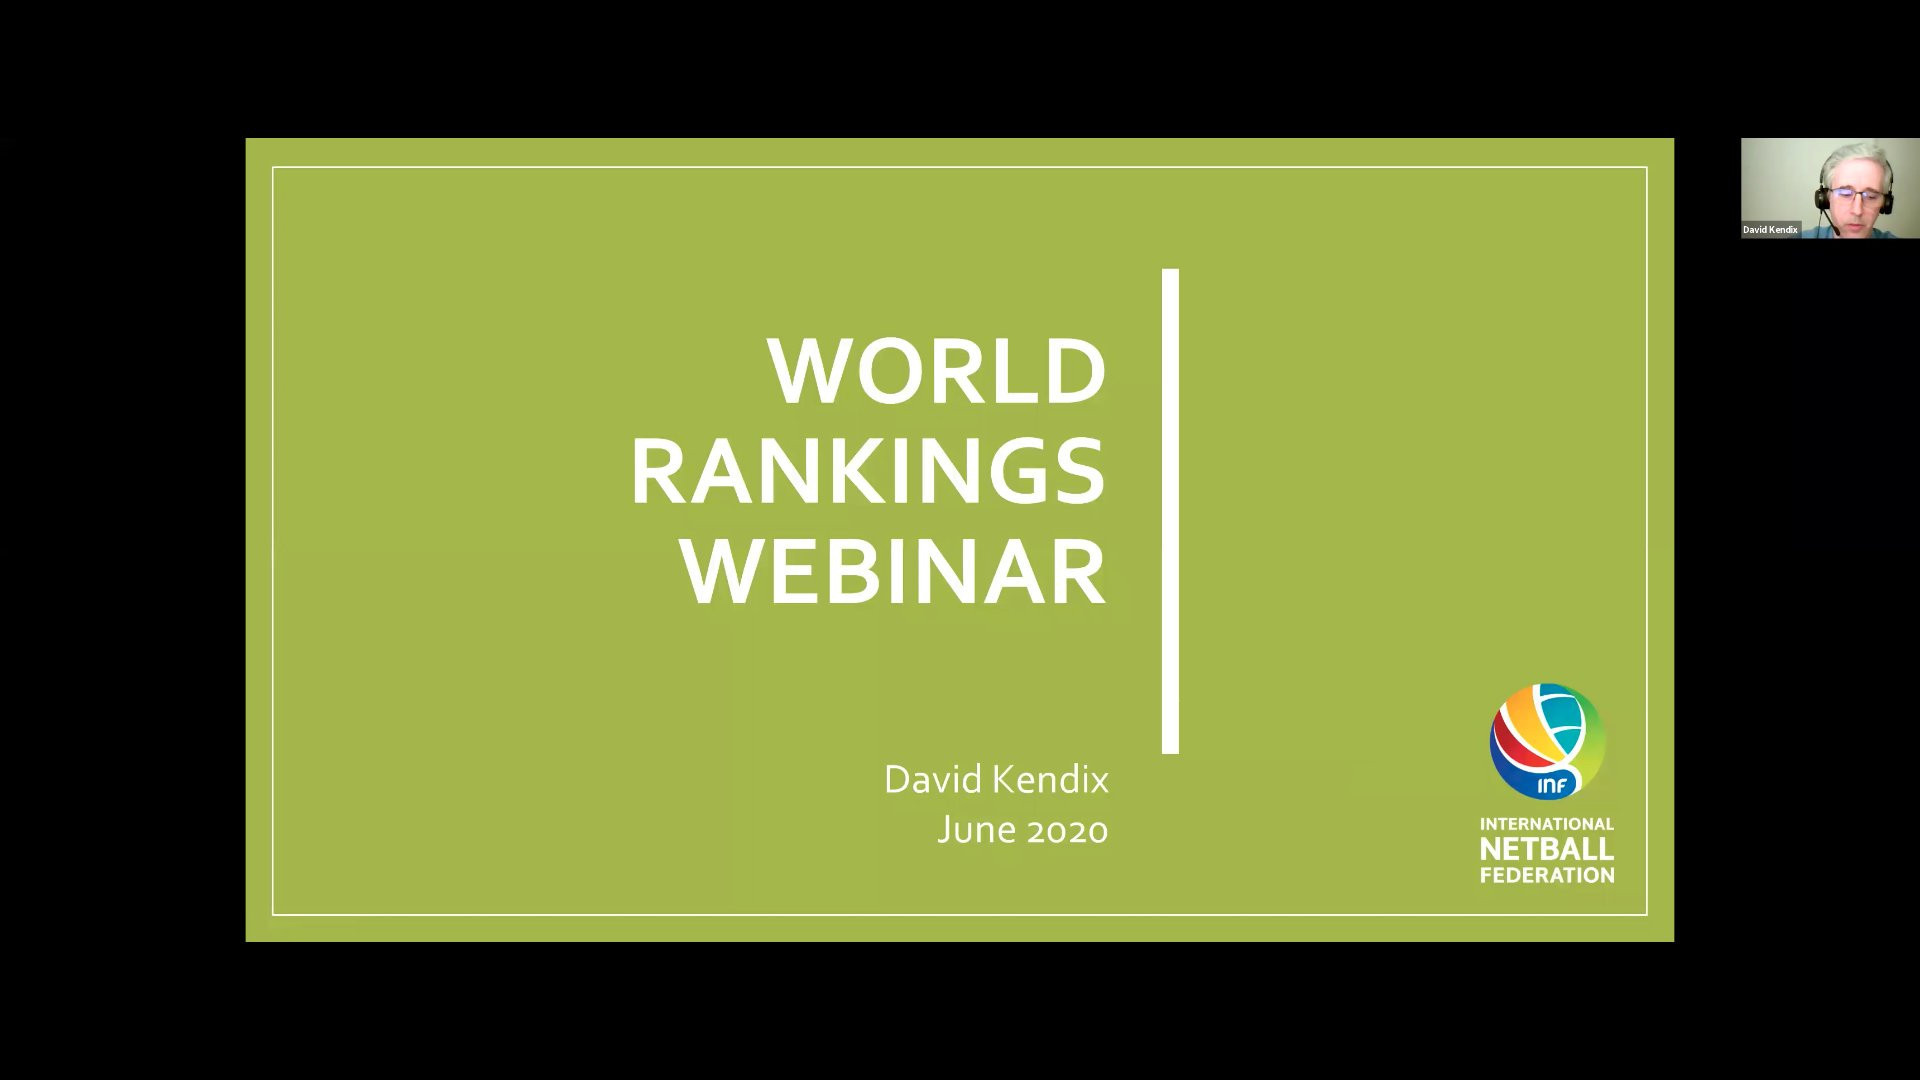 The International Netball Federation hosted a world ranking webinar for its members ©INF